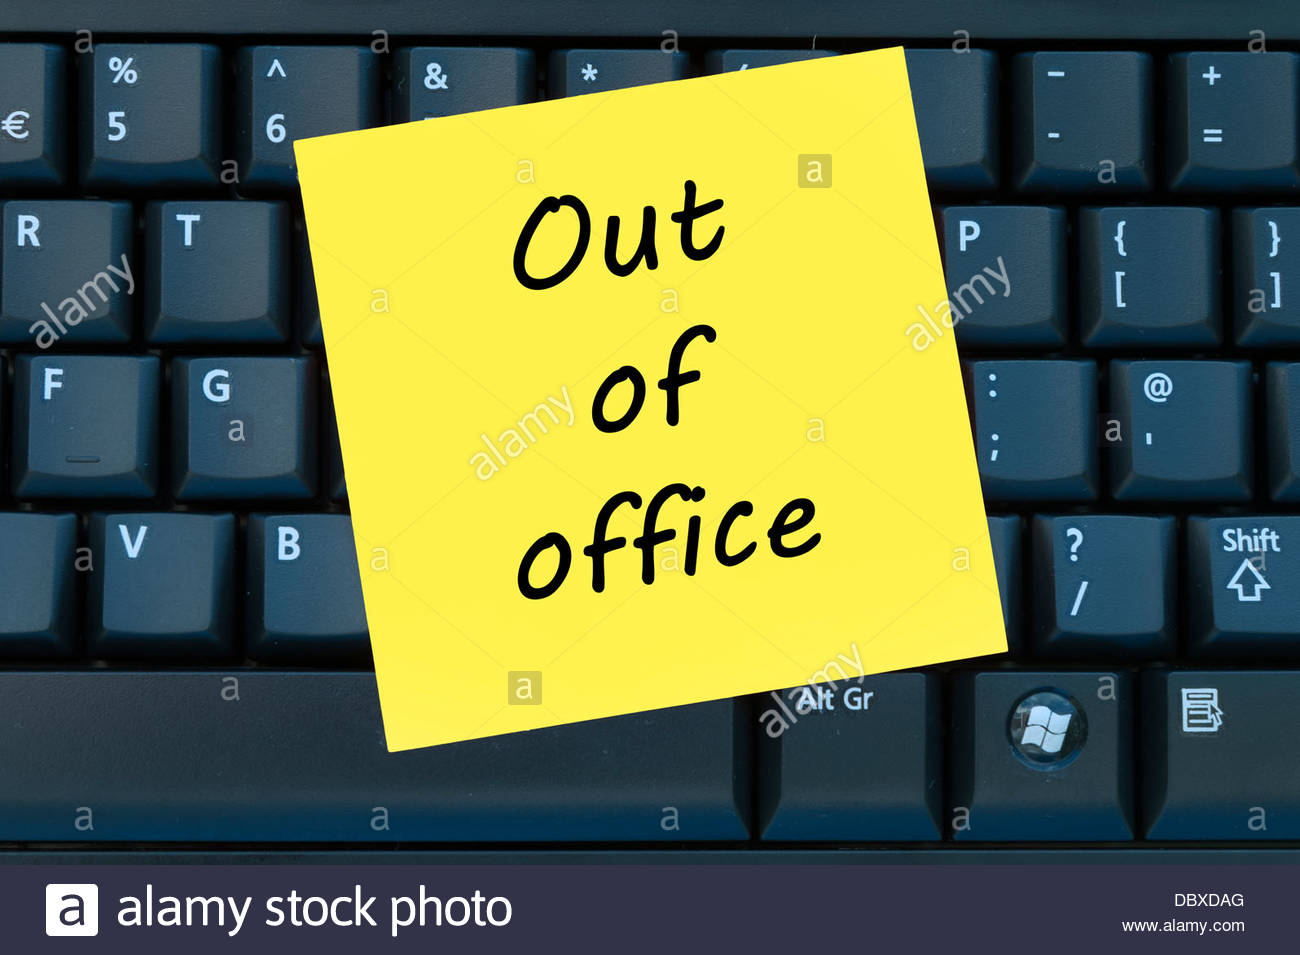 Out Of Office Post It Sticky Yellow Note Stock Photo, Royalty Free ...